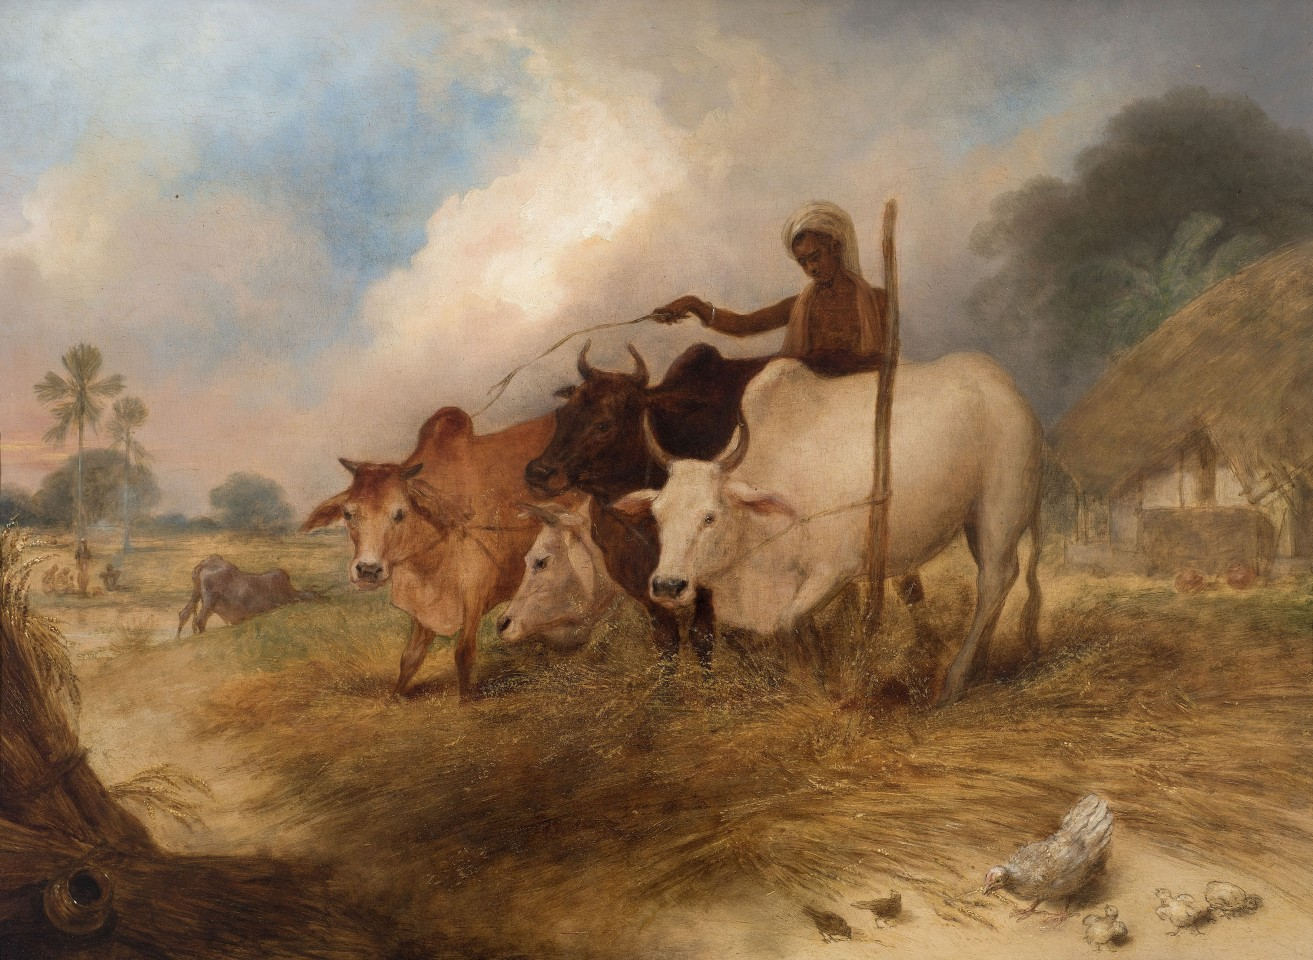 15. Arthur William Devis (1762-1822), Ploughing , c. 1792 - 1795